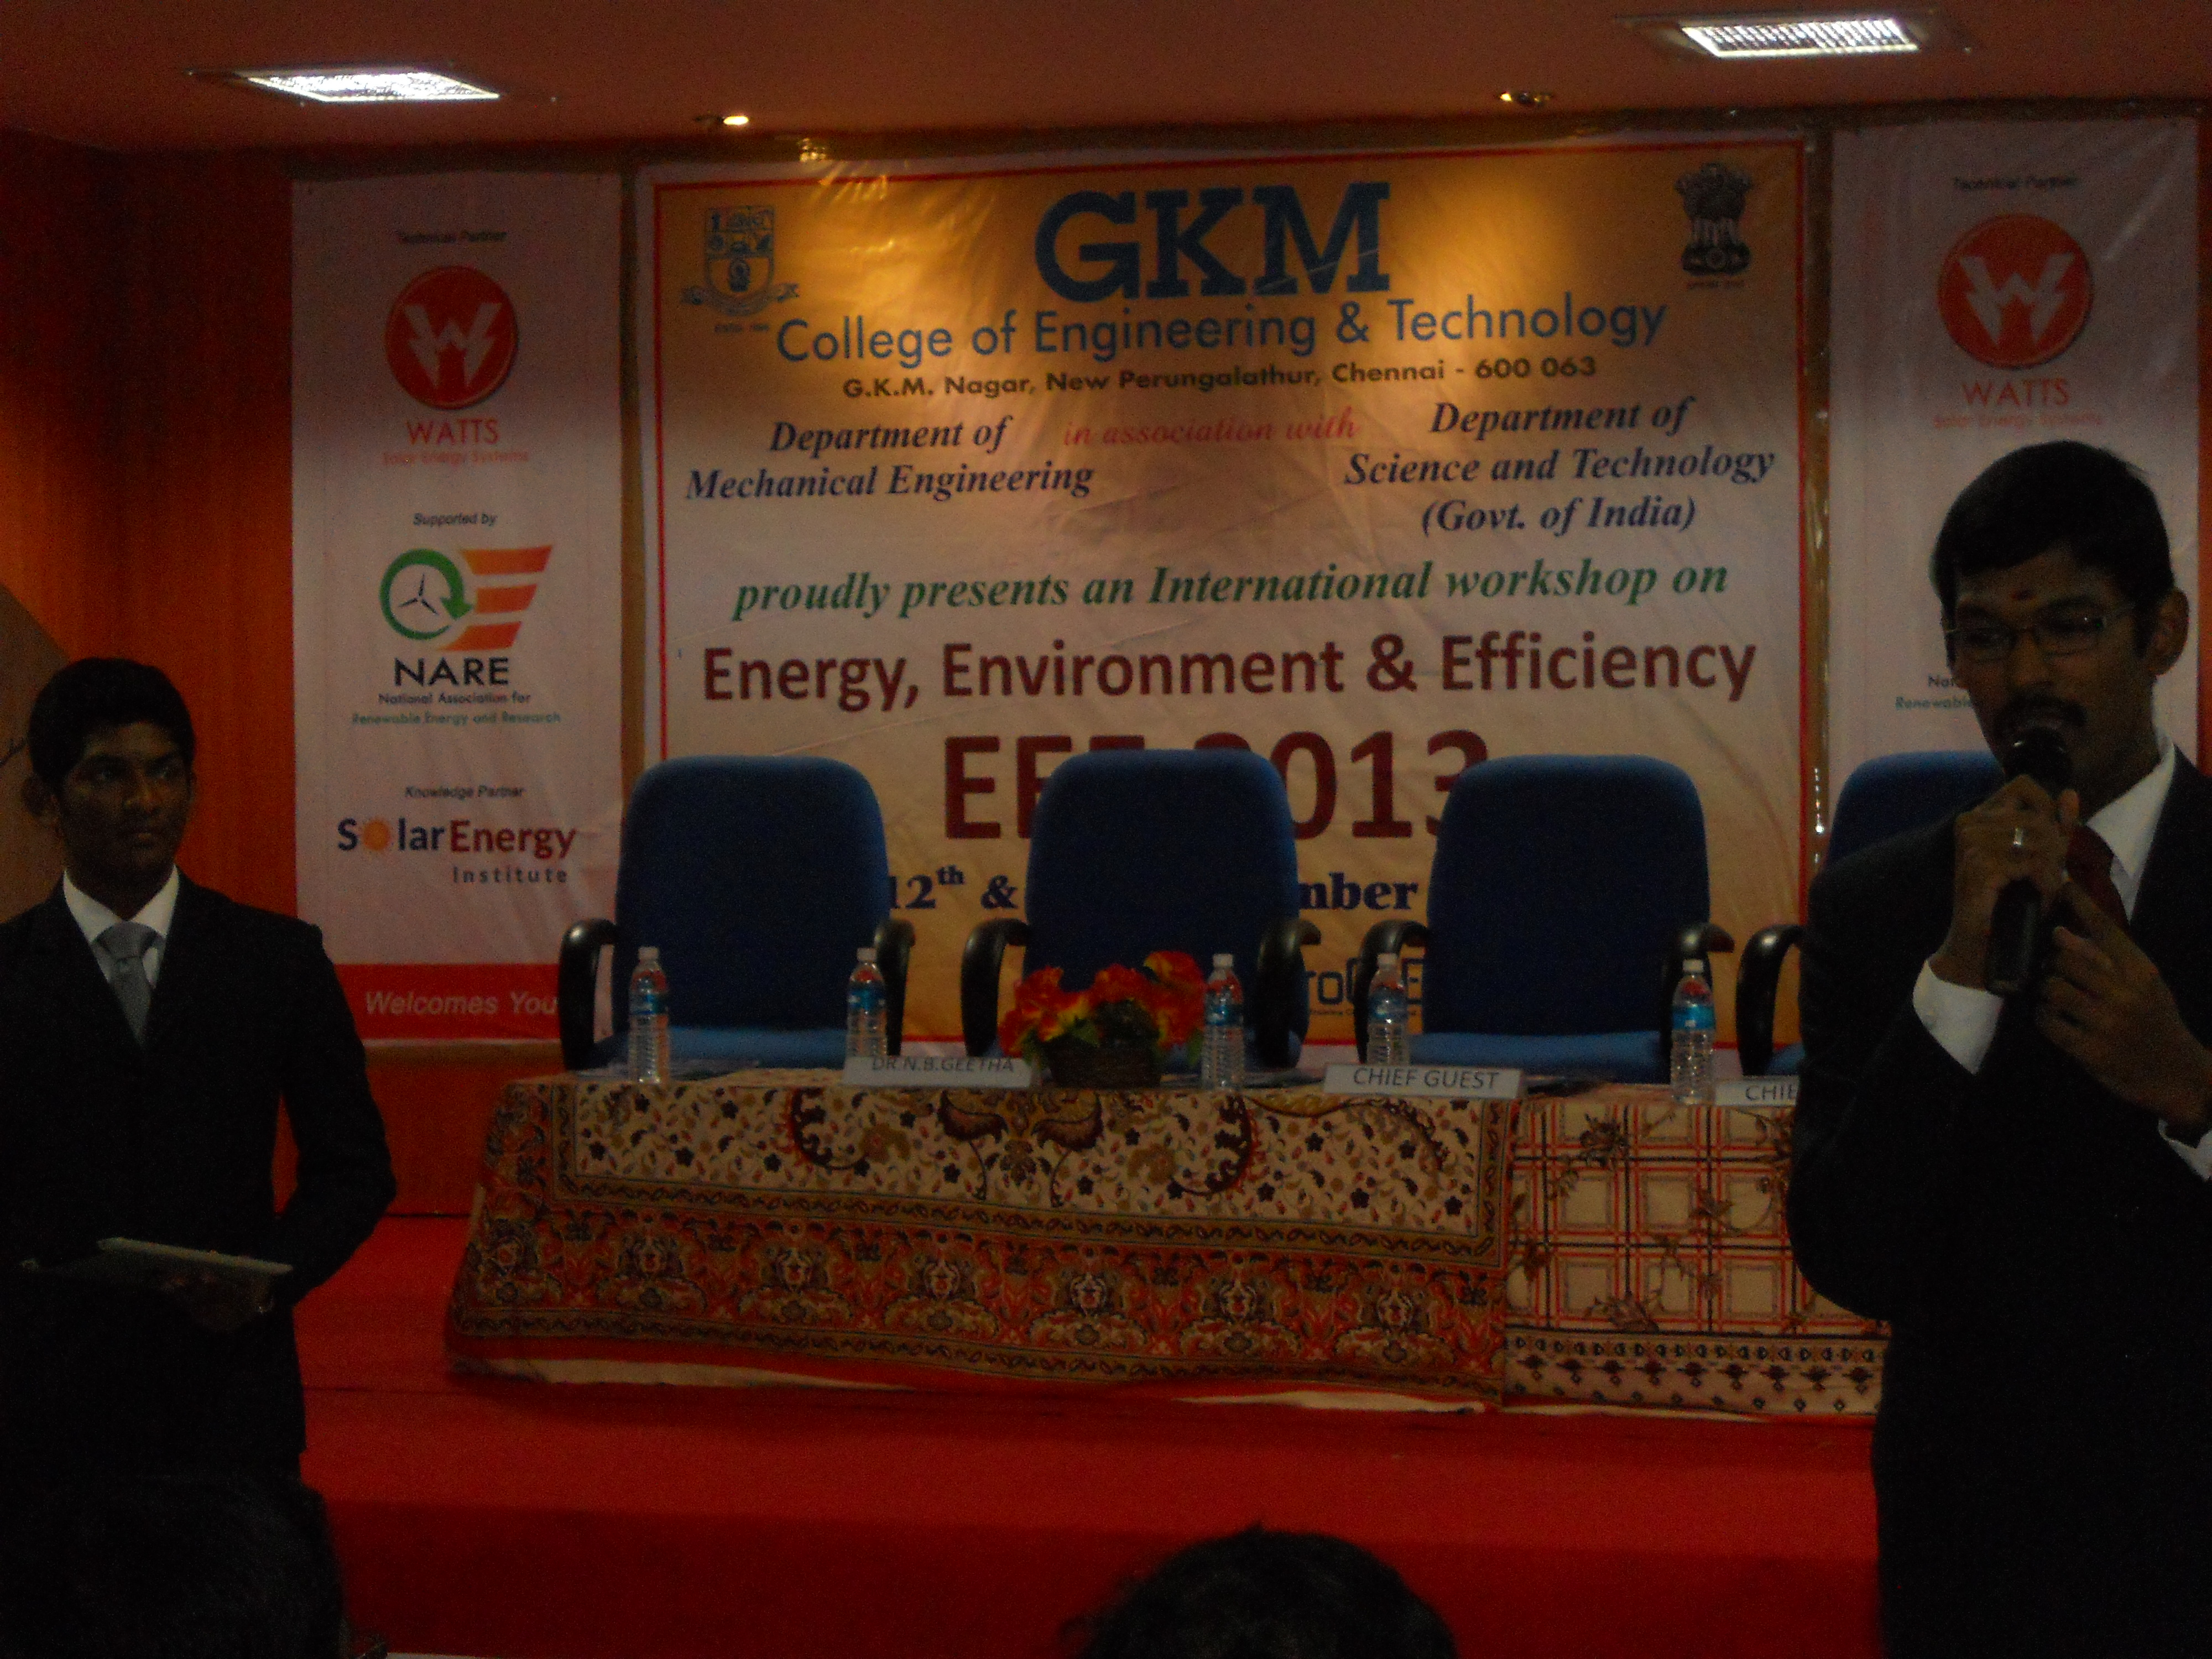 Solar Energy Insitute, supported International Workshop on Energy, Environment and Efficiency held at GKM college, Perungalathur.